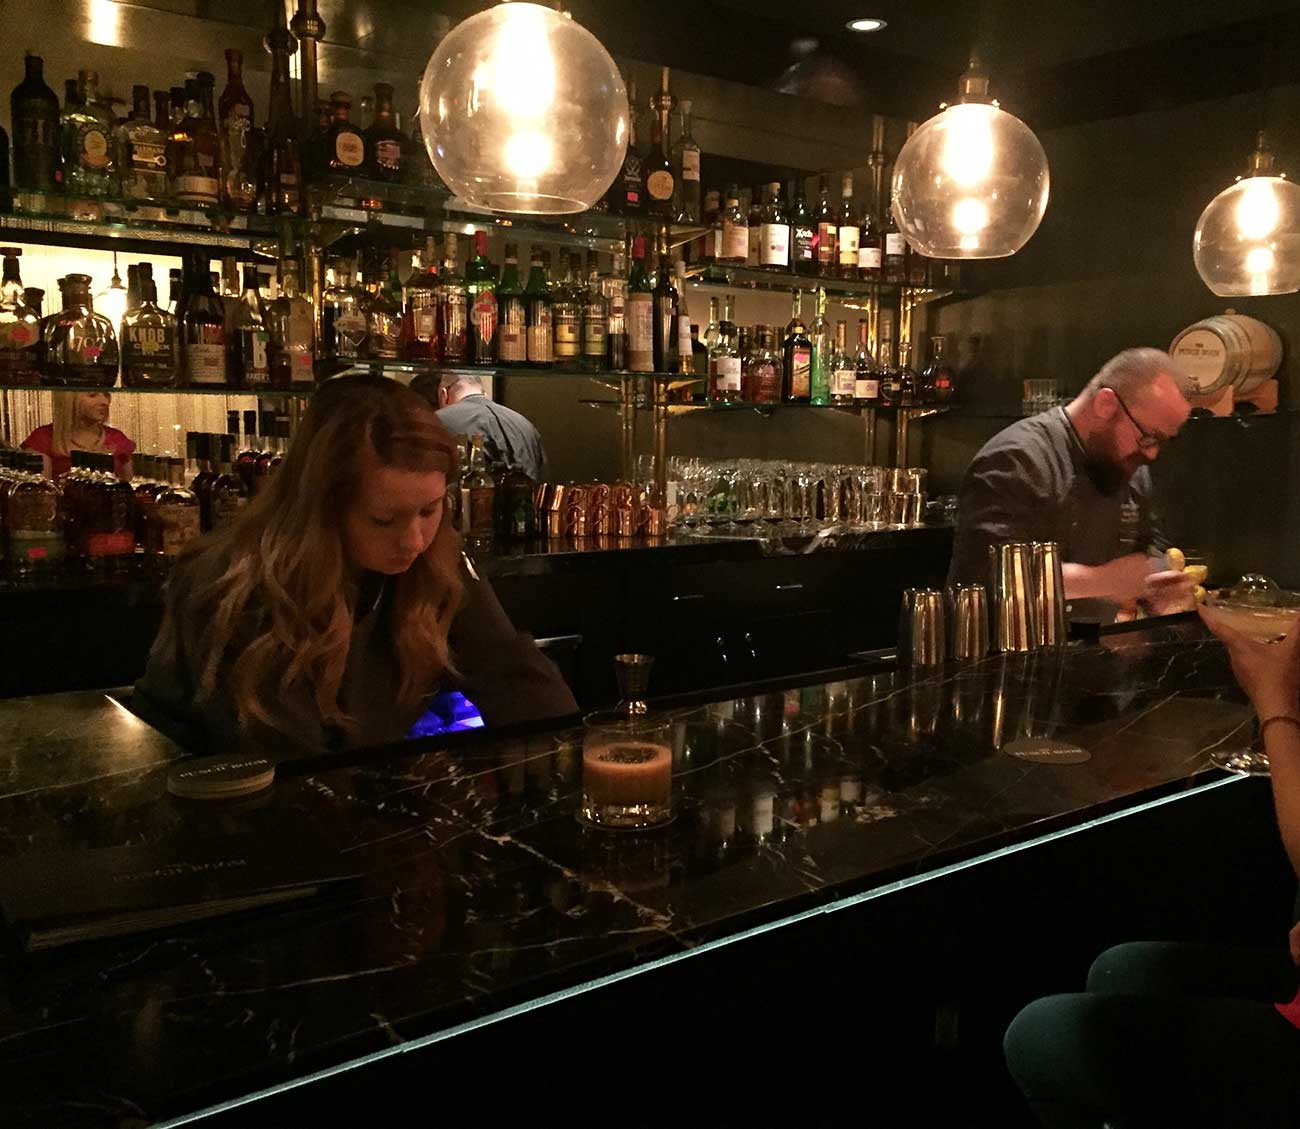 Introducing the new Punch Room apprentice and Charlotte's next great mixologist